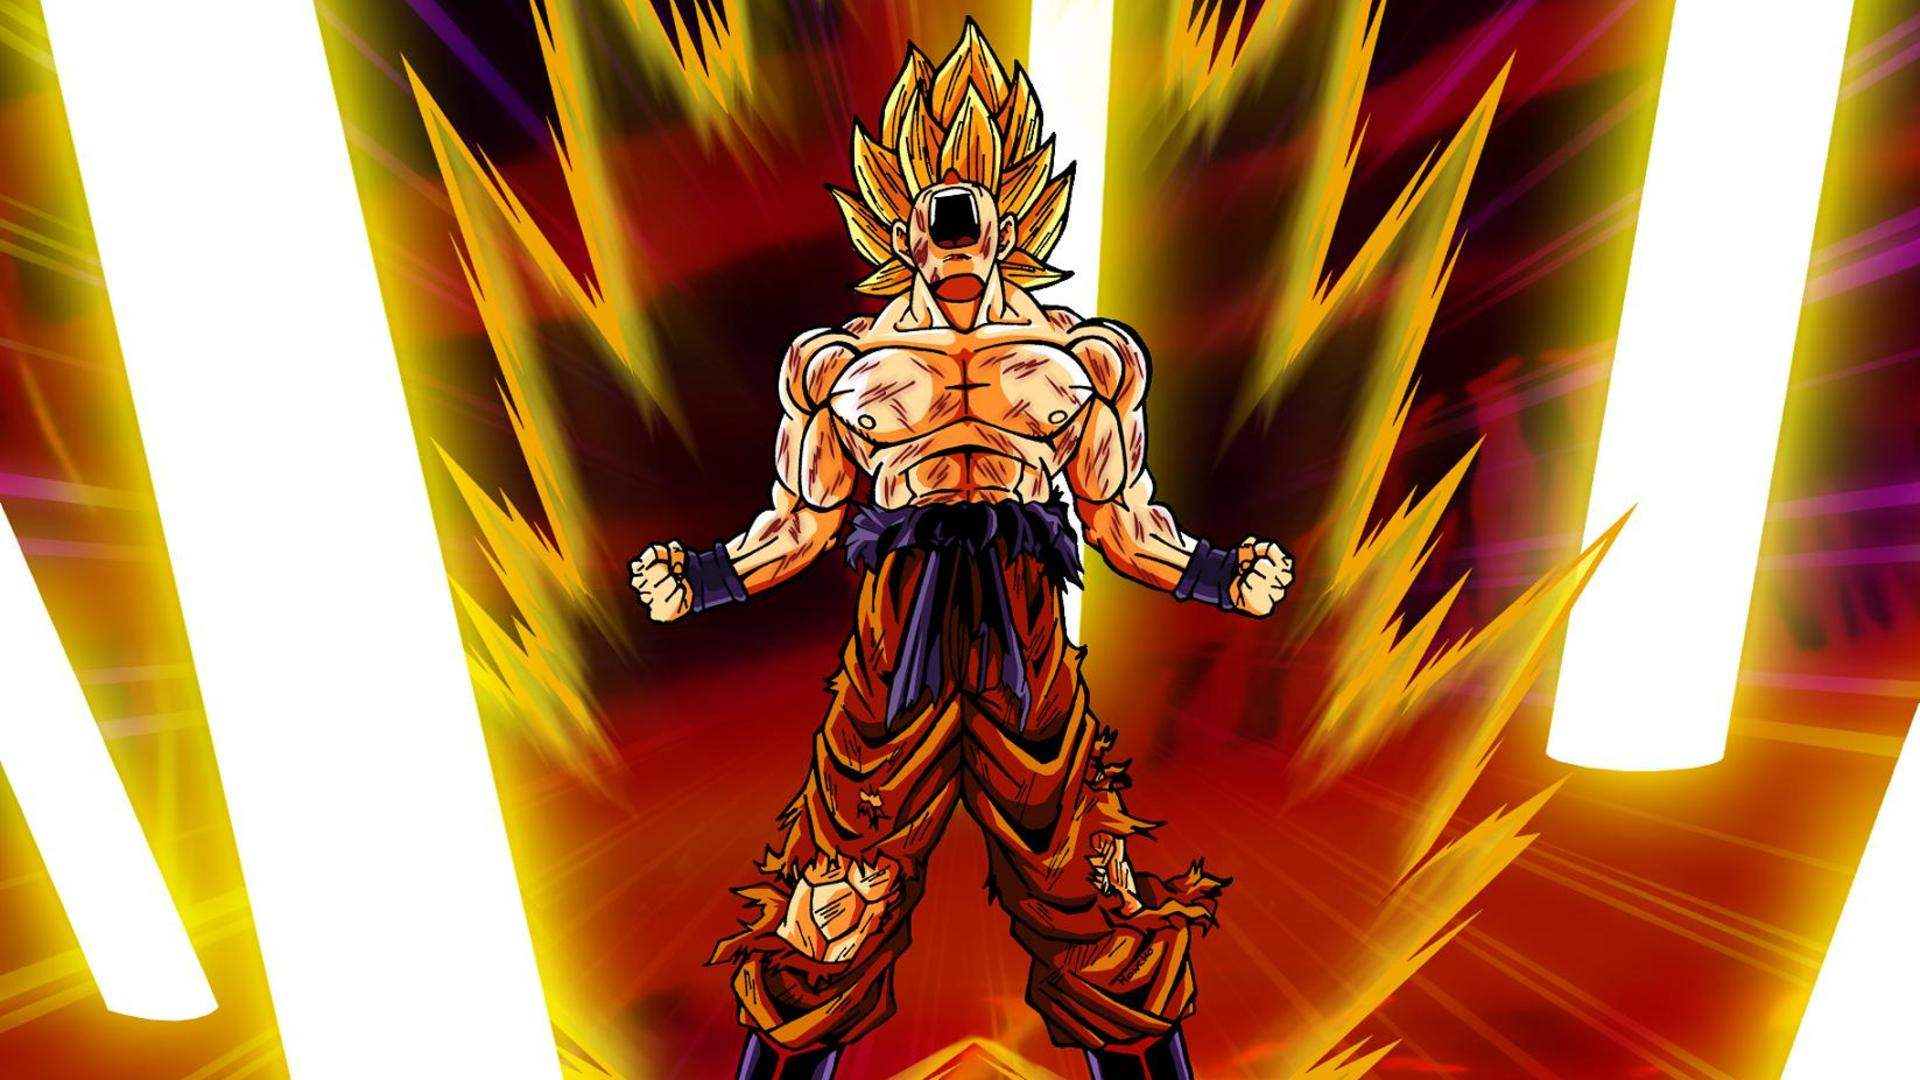 Dragon Ball Z Goku Super Saiyan   [ src ] 1920x1080